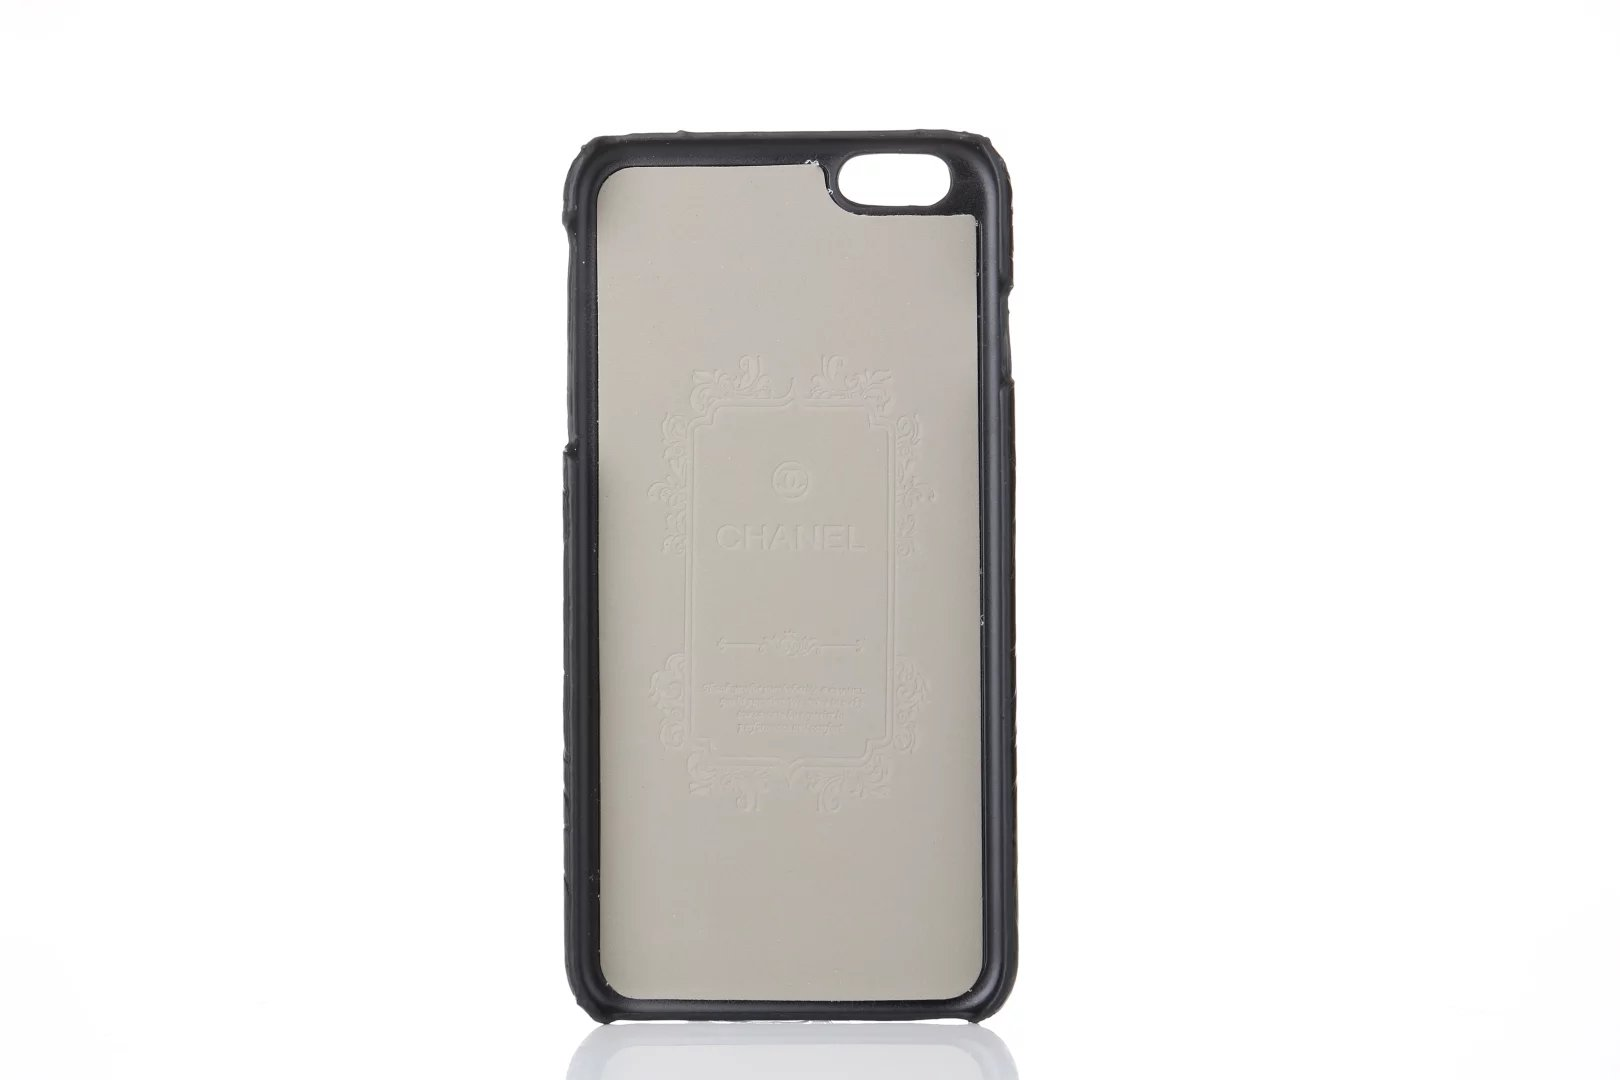 iphone 6 with cover good iphone 6 cases fashion iphone6 case iphone 6 new case cell phone covers new apple iphone 6 release date iphone 6 cool covers new iphone price of new iphone 6